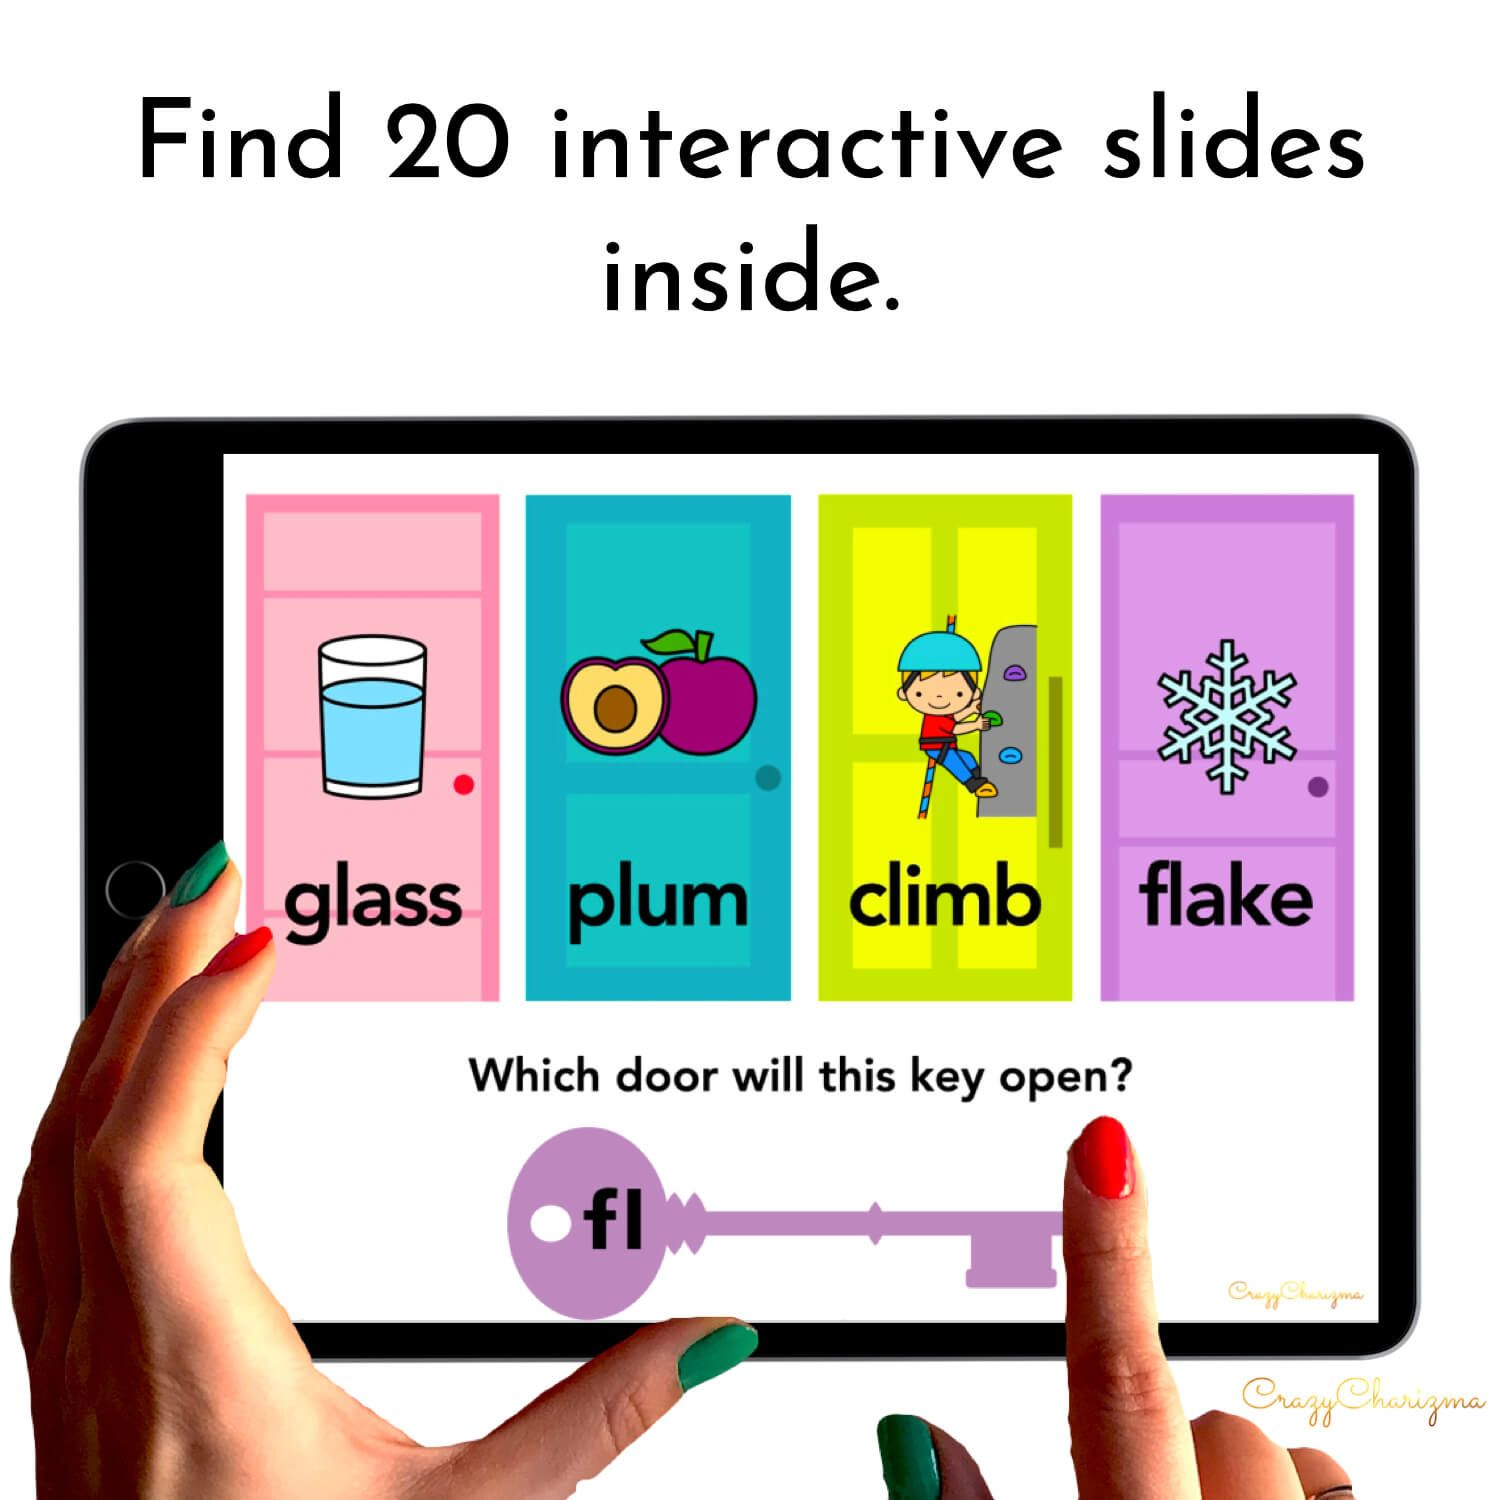 Need to practice beginning L BLENDS in a fun way? Check out these interactive slides for Google Classroom. Kids will read words on doors (images will help too) and drag the key with the blend to open the correct door.